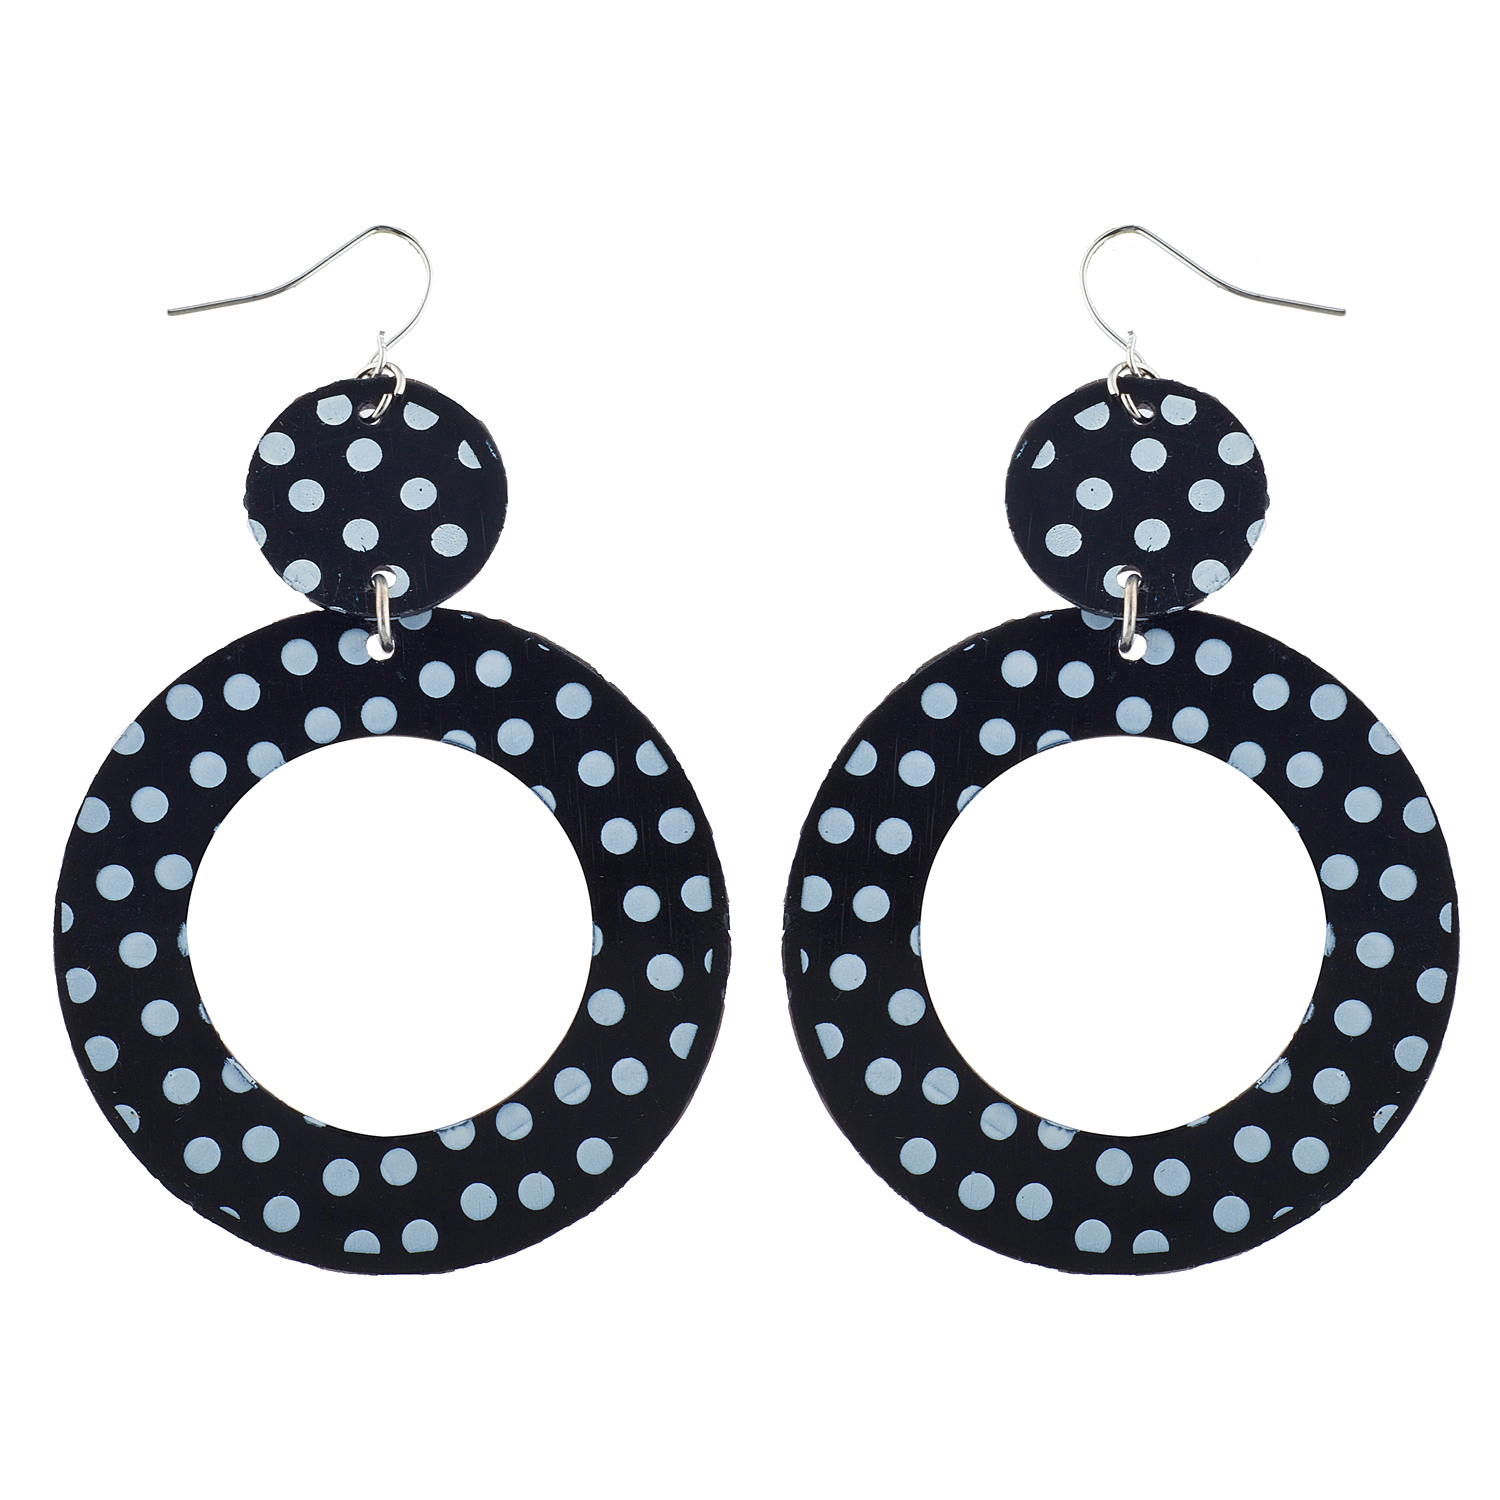 Details About Lux Accessories Black White Polka Dot Sungles Scarf Earrings 50 S Costume Set